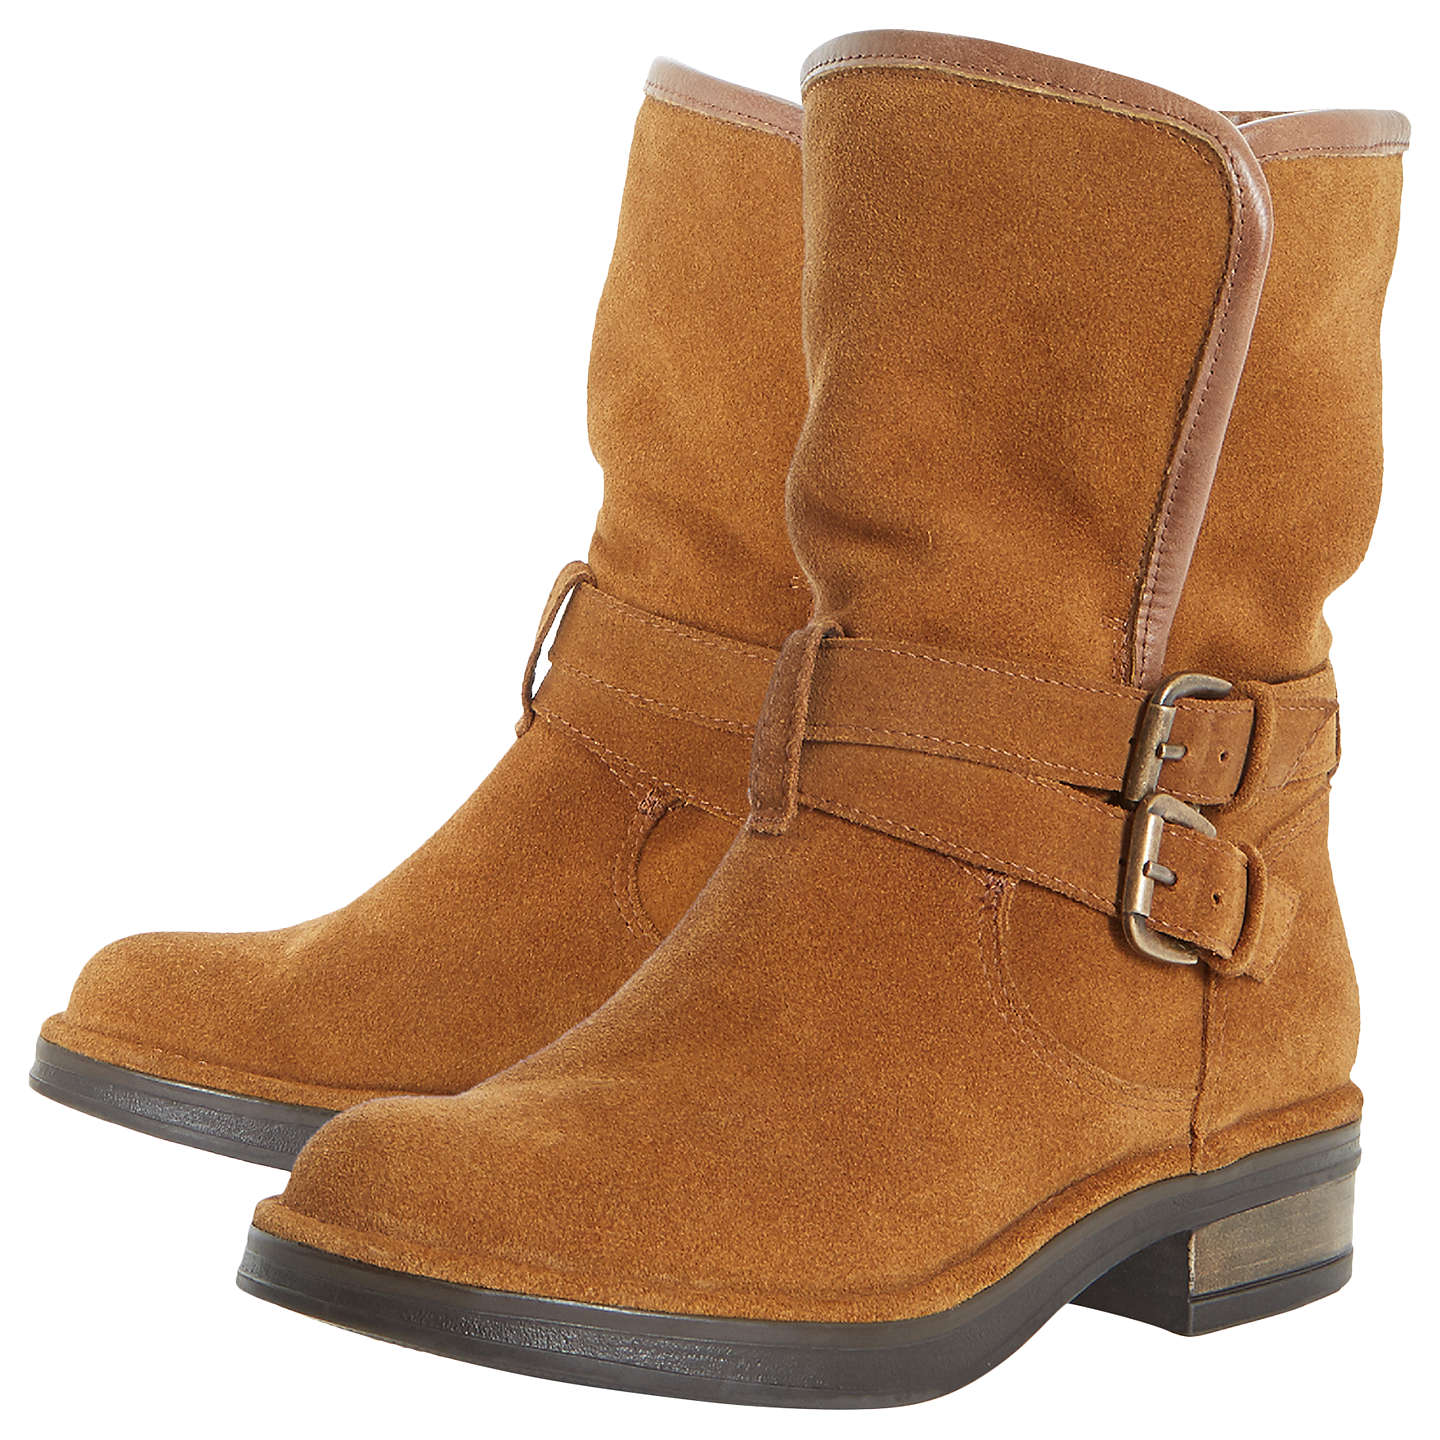 BuyDune Ramona Calf Boots, Tan, 3 Online at johnlewis.com